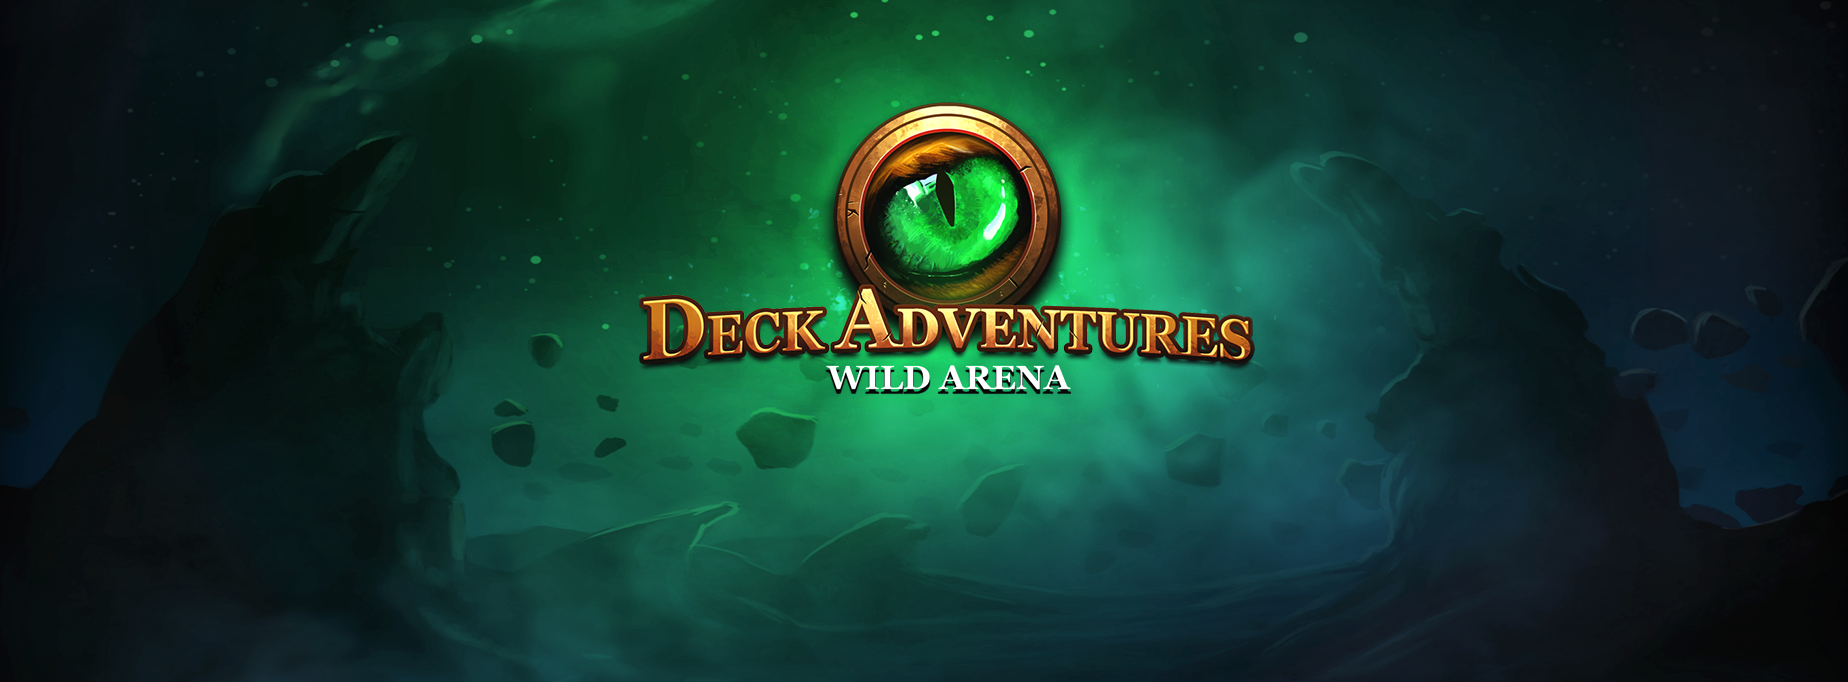 Deck Adventures - Wild Arena